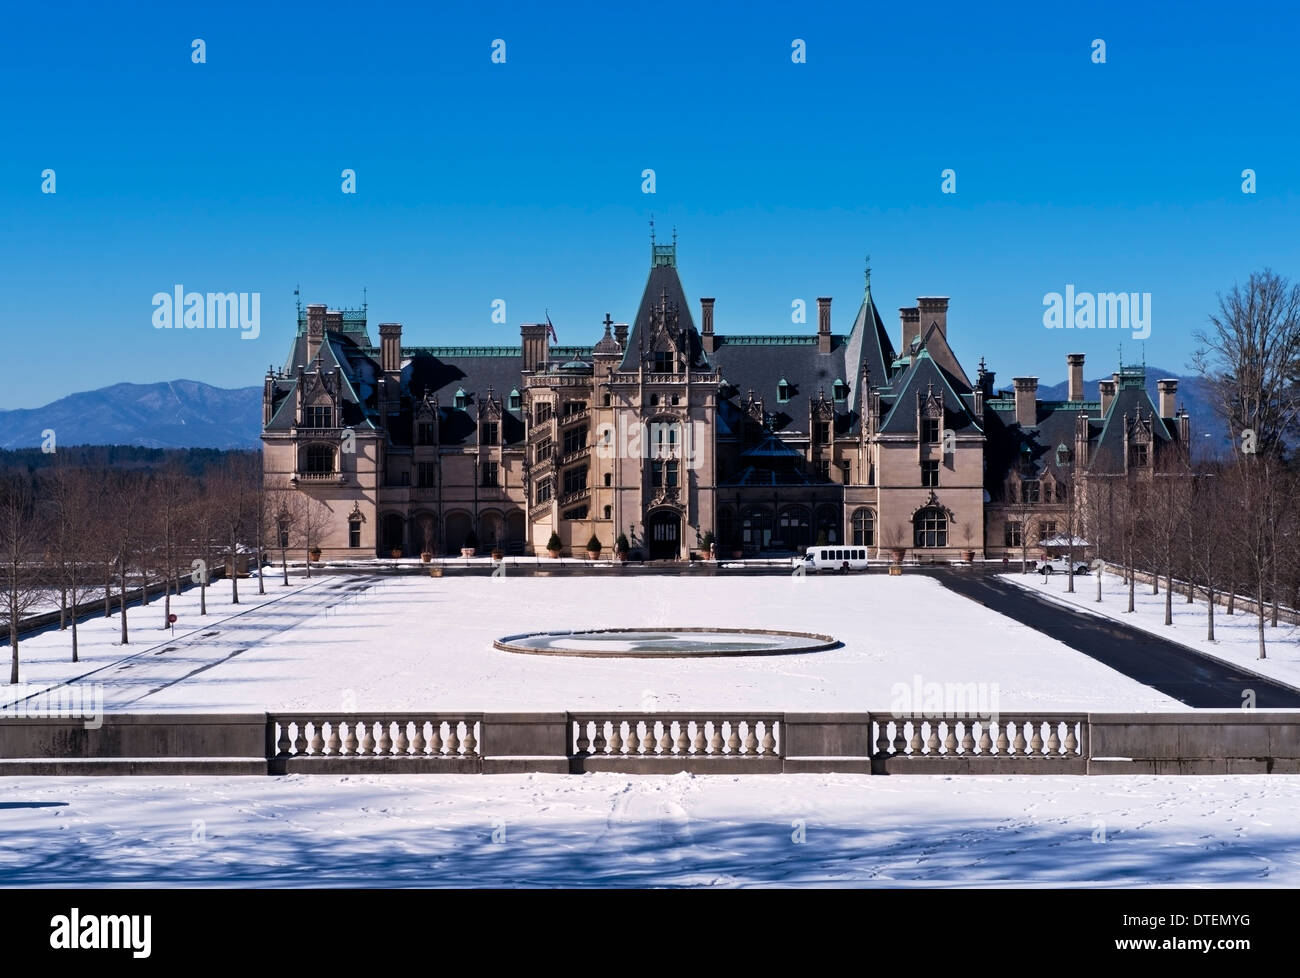 The Biltmore Mansion, front View, with snow on the ground, Asheville North Carolina - Stock Image